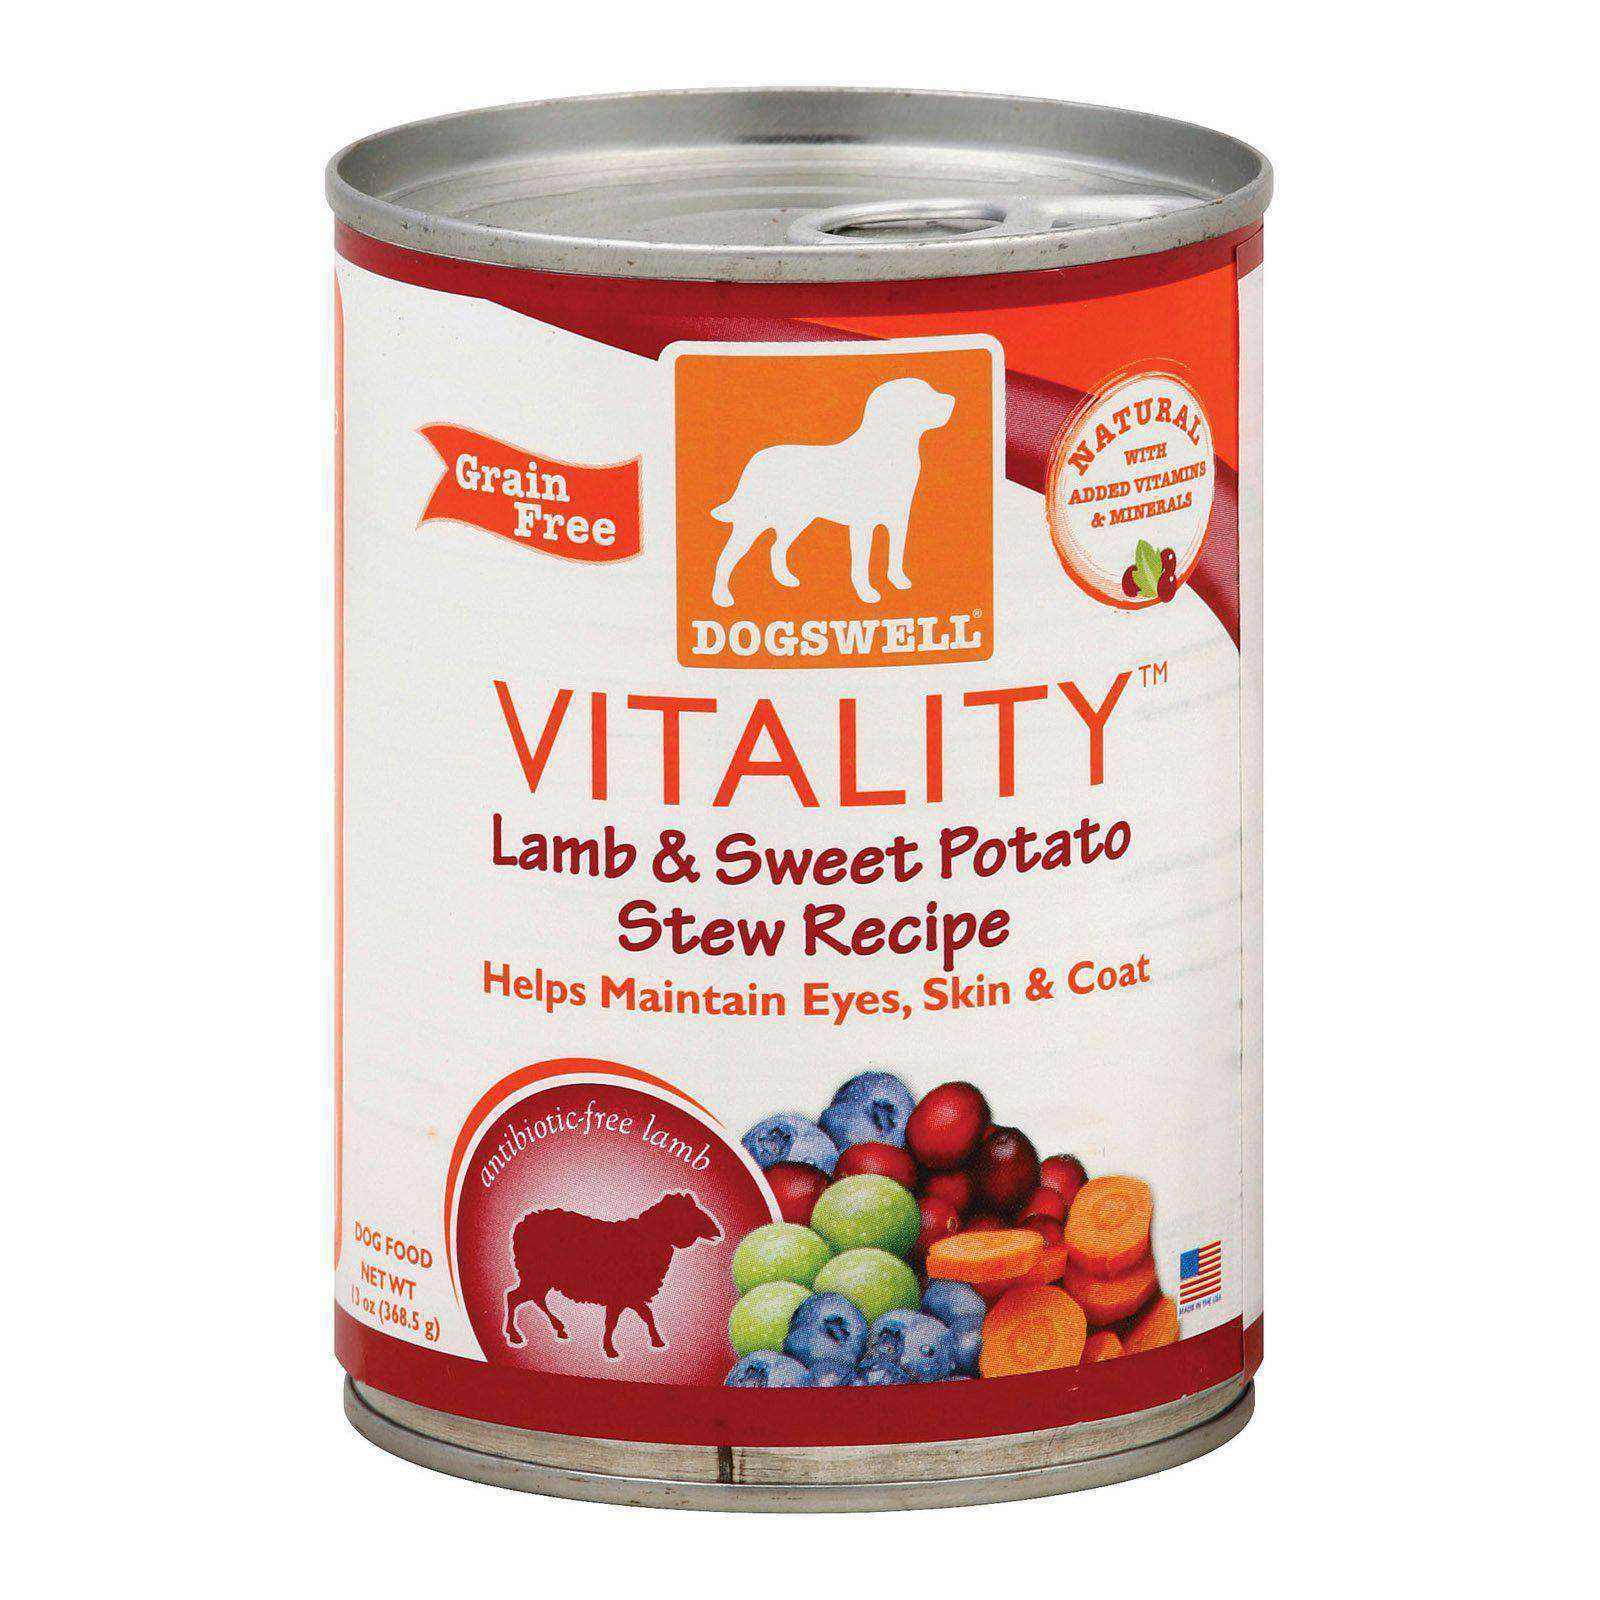 Dogs Well Vitality Lamb And Sweet Potato Stew Canned Dog Food - Case Of 12 - 13 Oz.-Dogswell-DirtyFurClothing